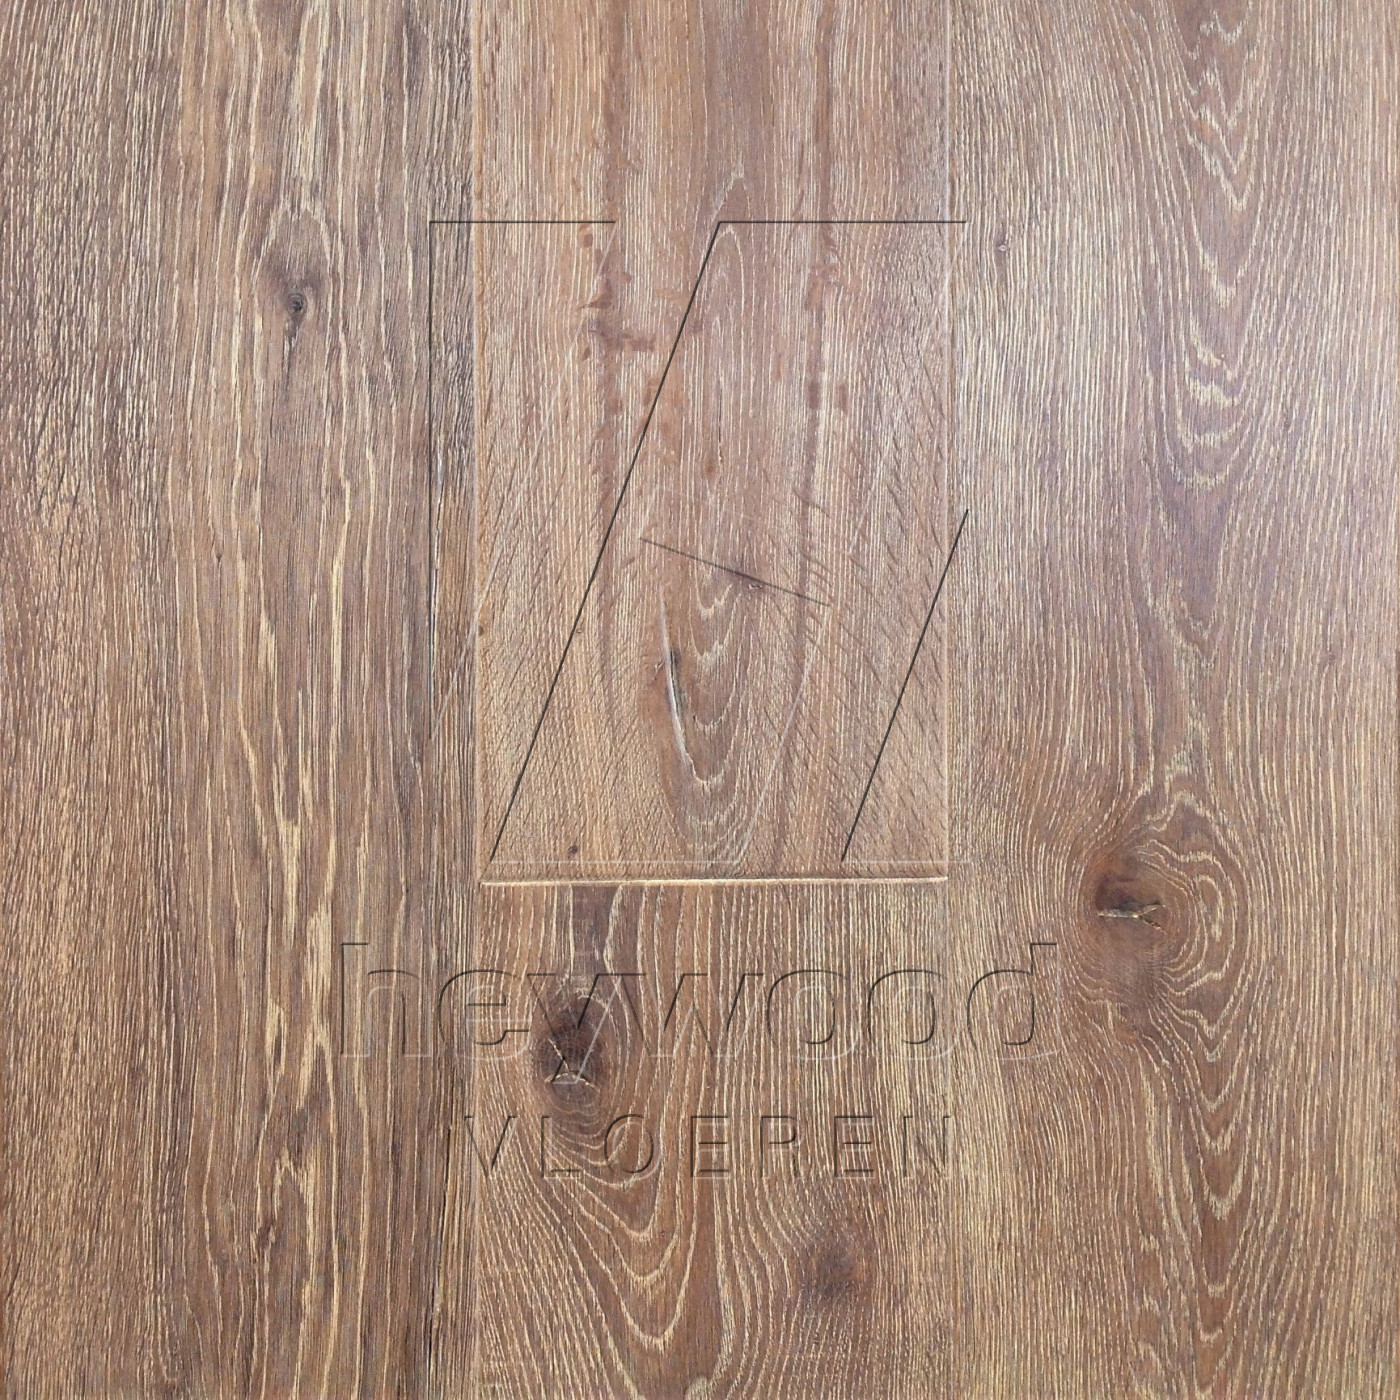 Antique Plank 'Cerro Torre' in Aged Antique Surface of Aged Hardwood Floors